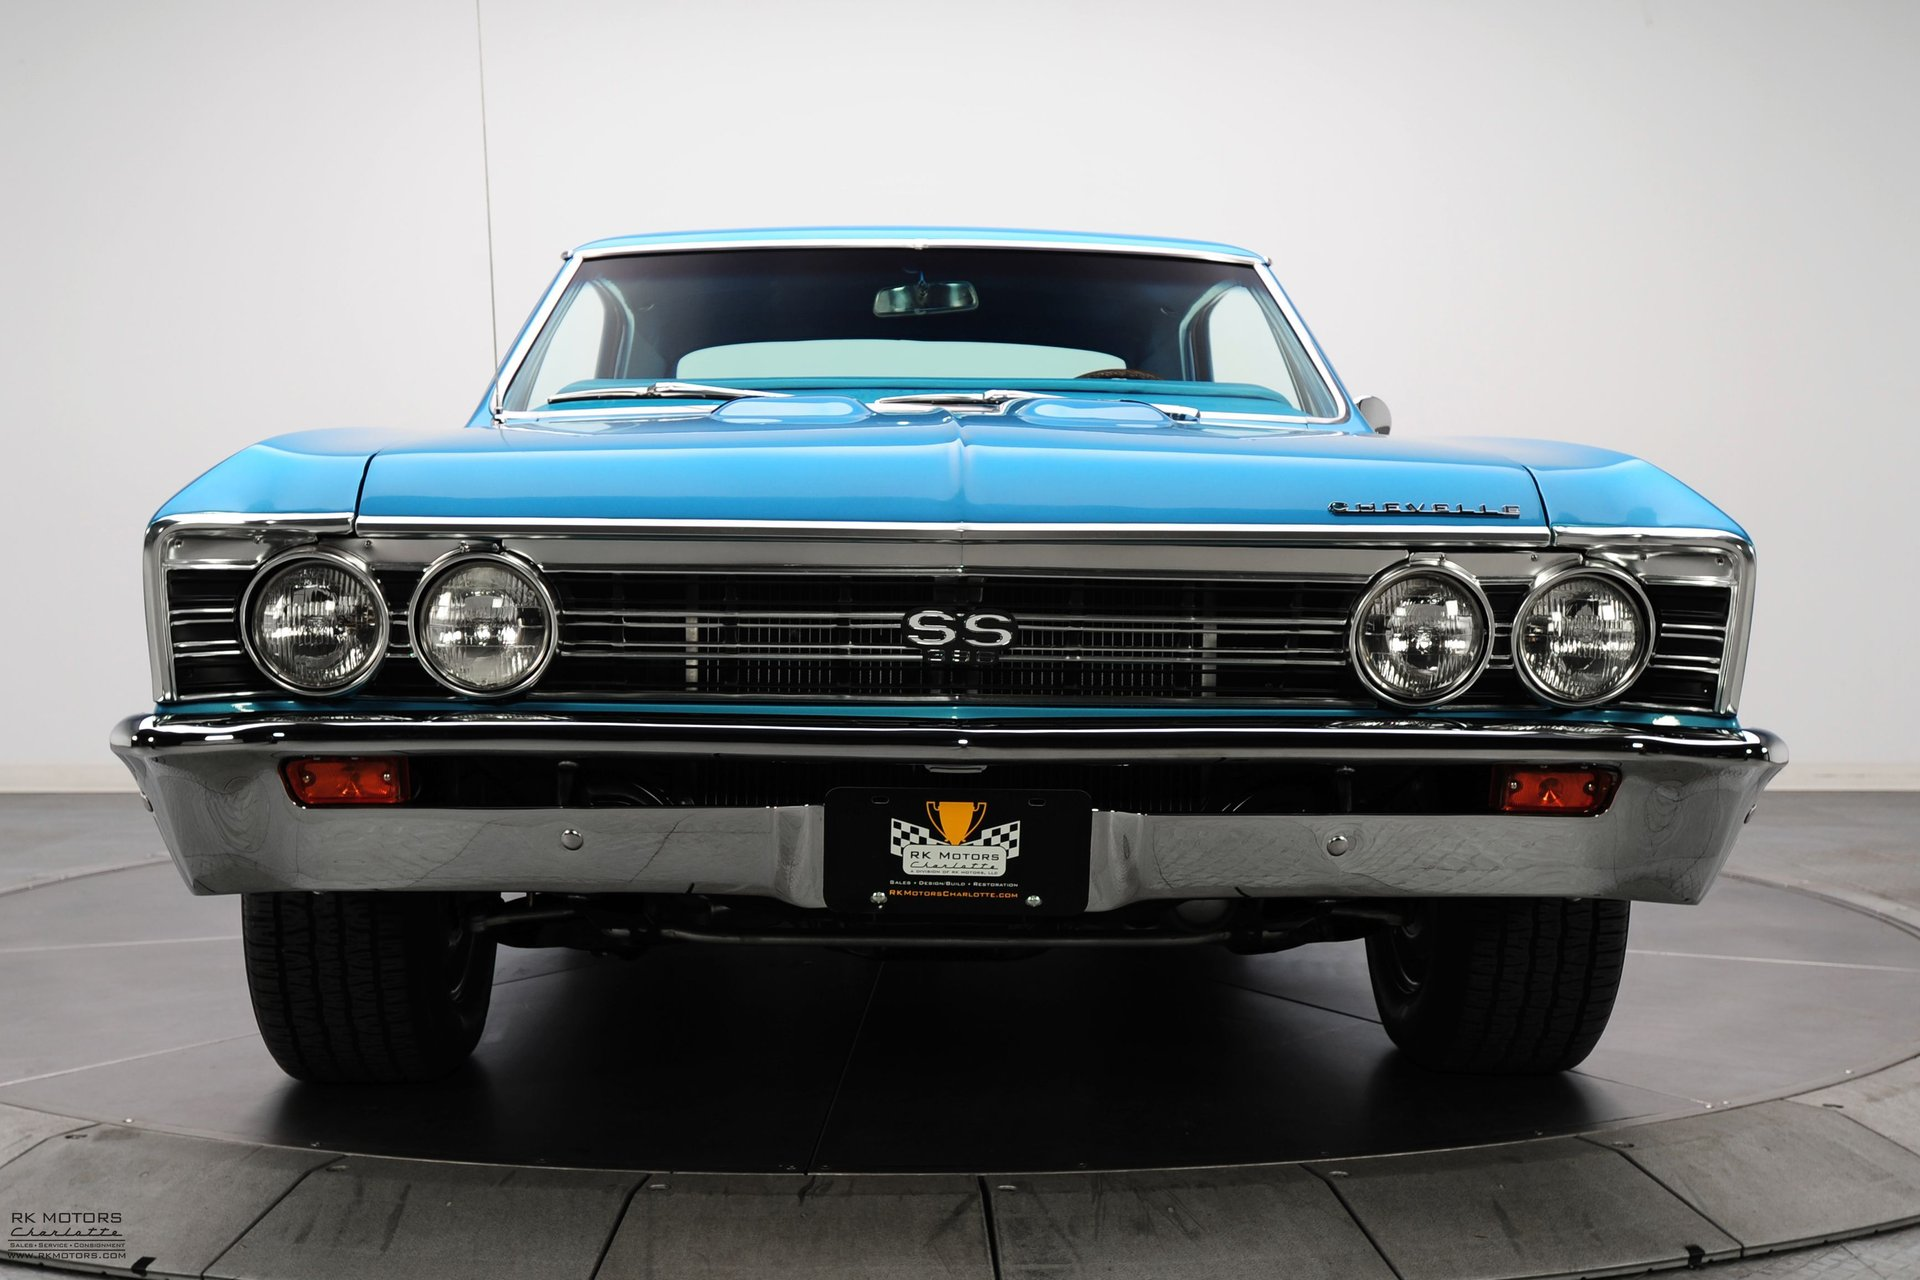 132868 1967 Chevrolet Chevelle RK Motors Classic Cars for Sale